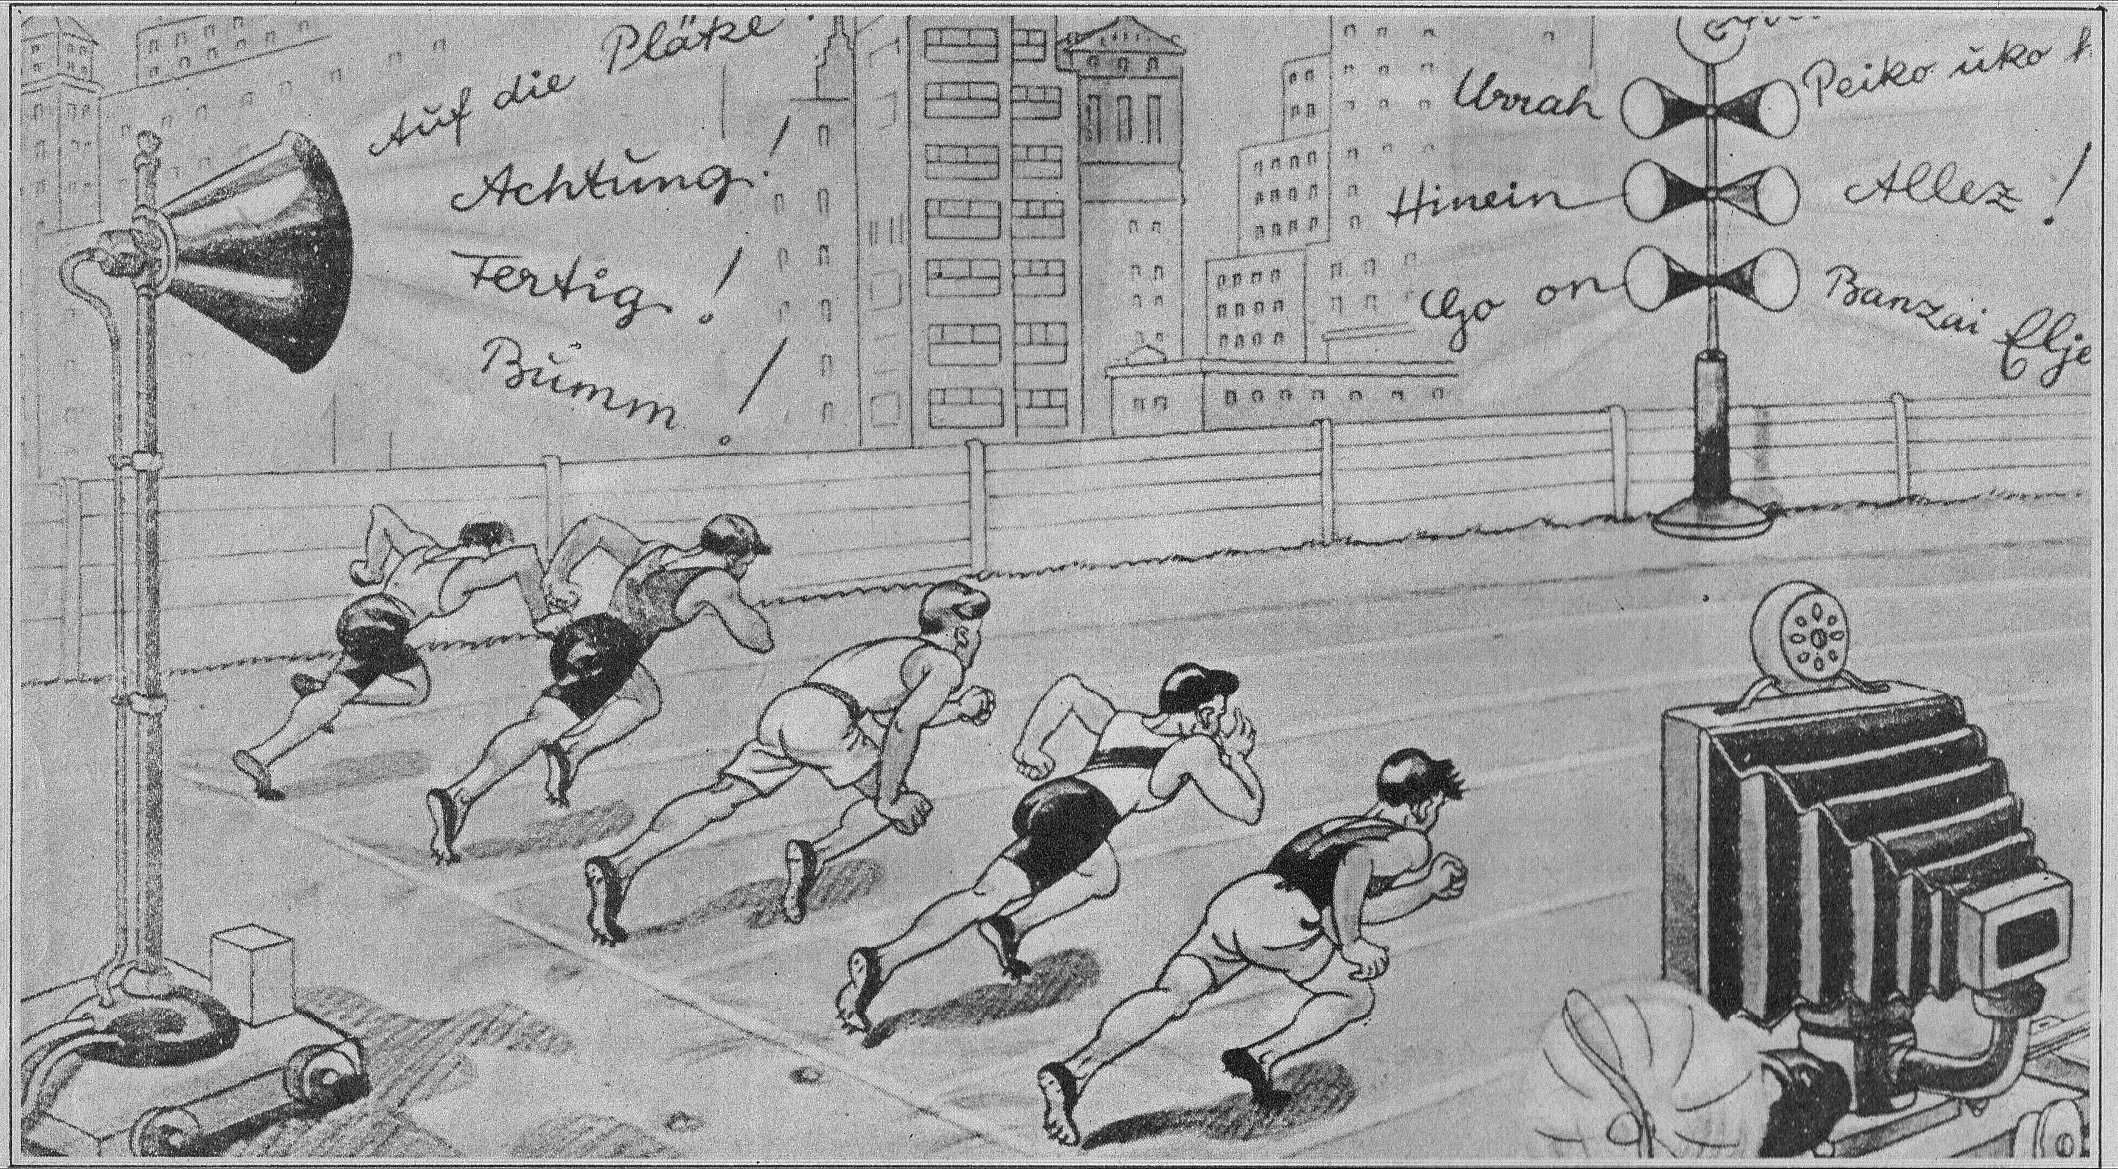 drawn people running in the Olympics